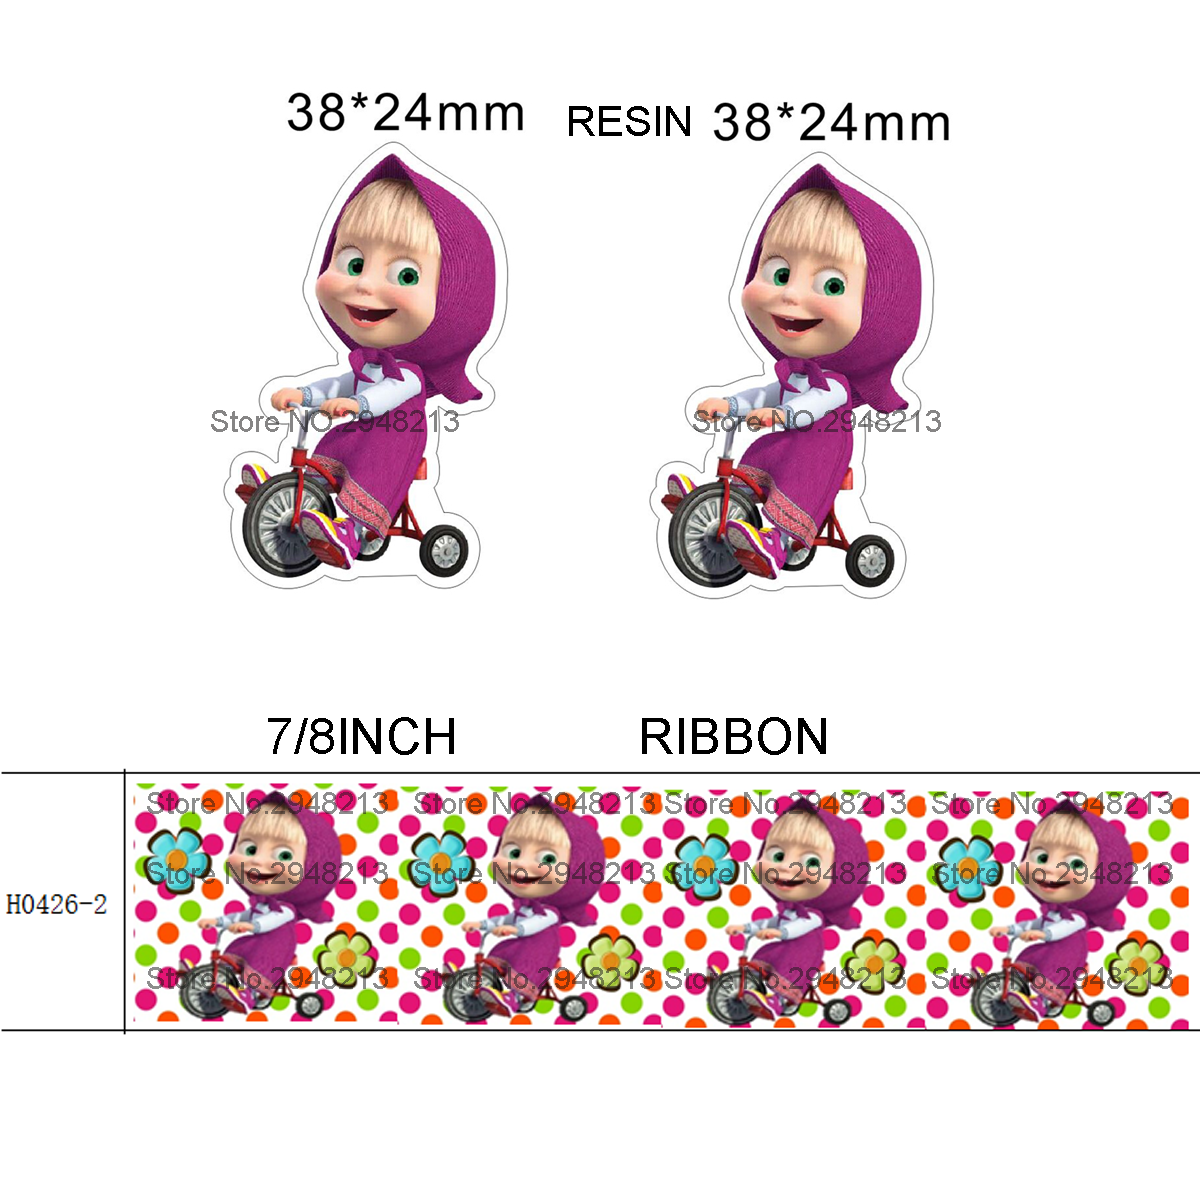 Figurines & Miniatures Collection Here Printed Cartoon Grosgrain Ribbon And Resin Sets 7/8inch 50yard Ribbon And 50pcs Resin 1 Sets Reb127